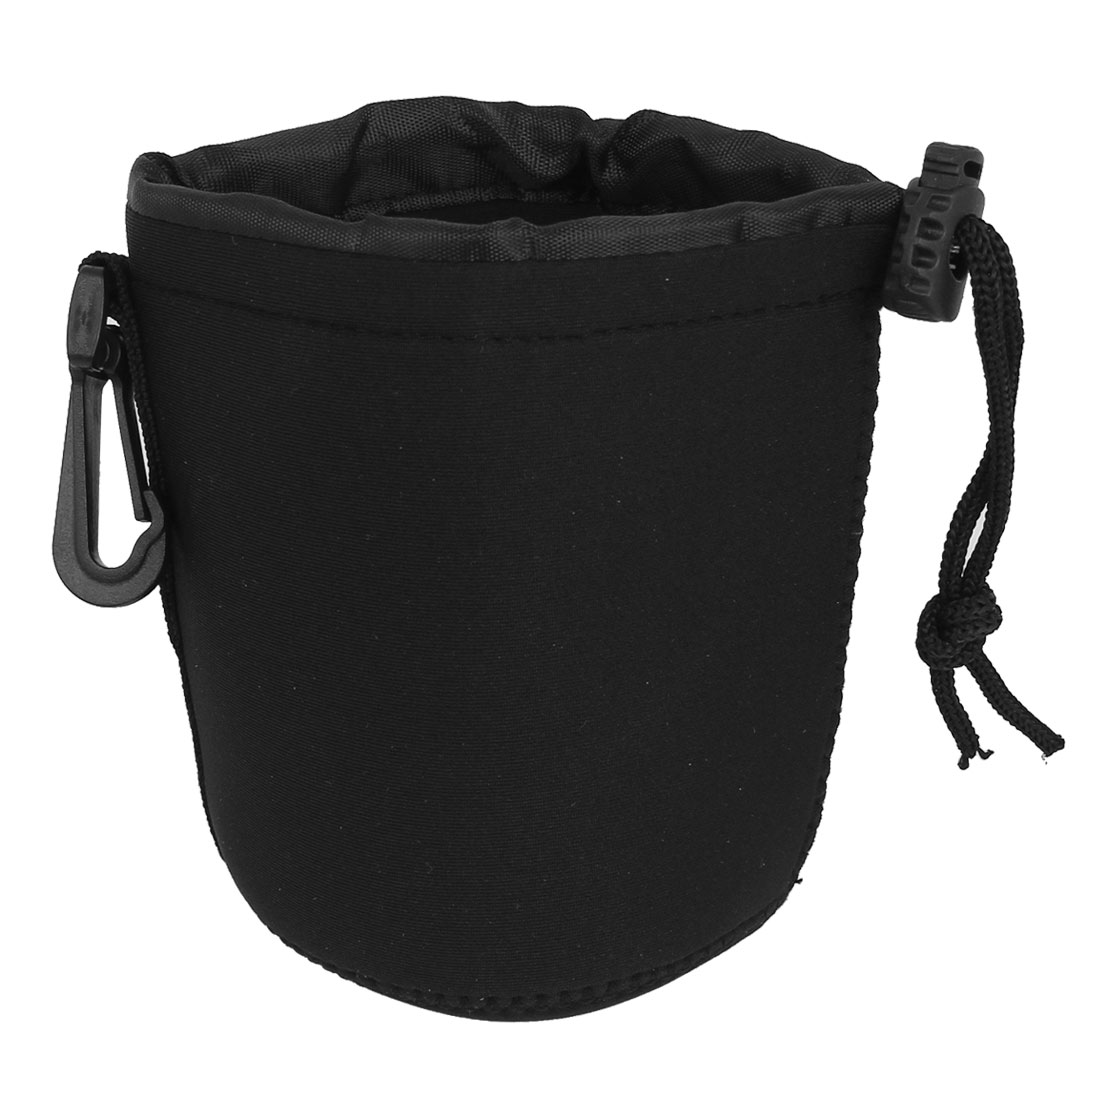 Size M Neoprene Lens Carrying Pouch Bag Holder Black for Digital Camera